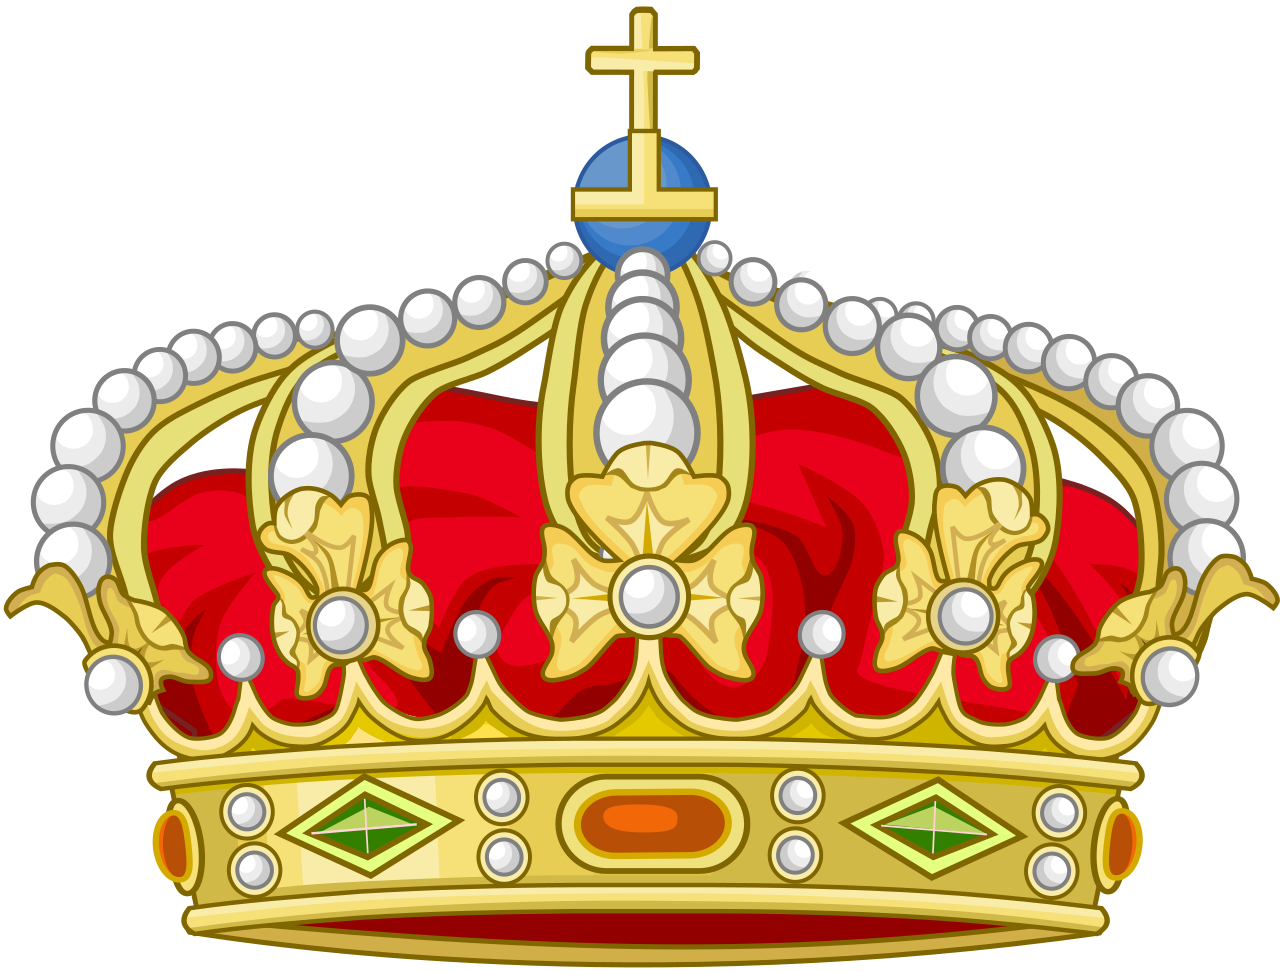 Free royal crown clipart banner transparent Crown Royal Clipart Royal Banner#3203250 banner transparent